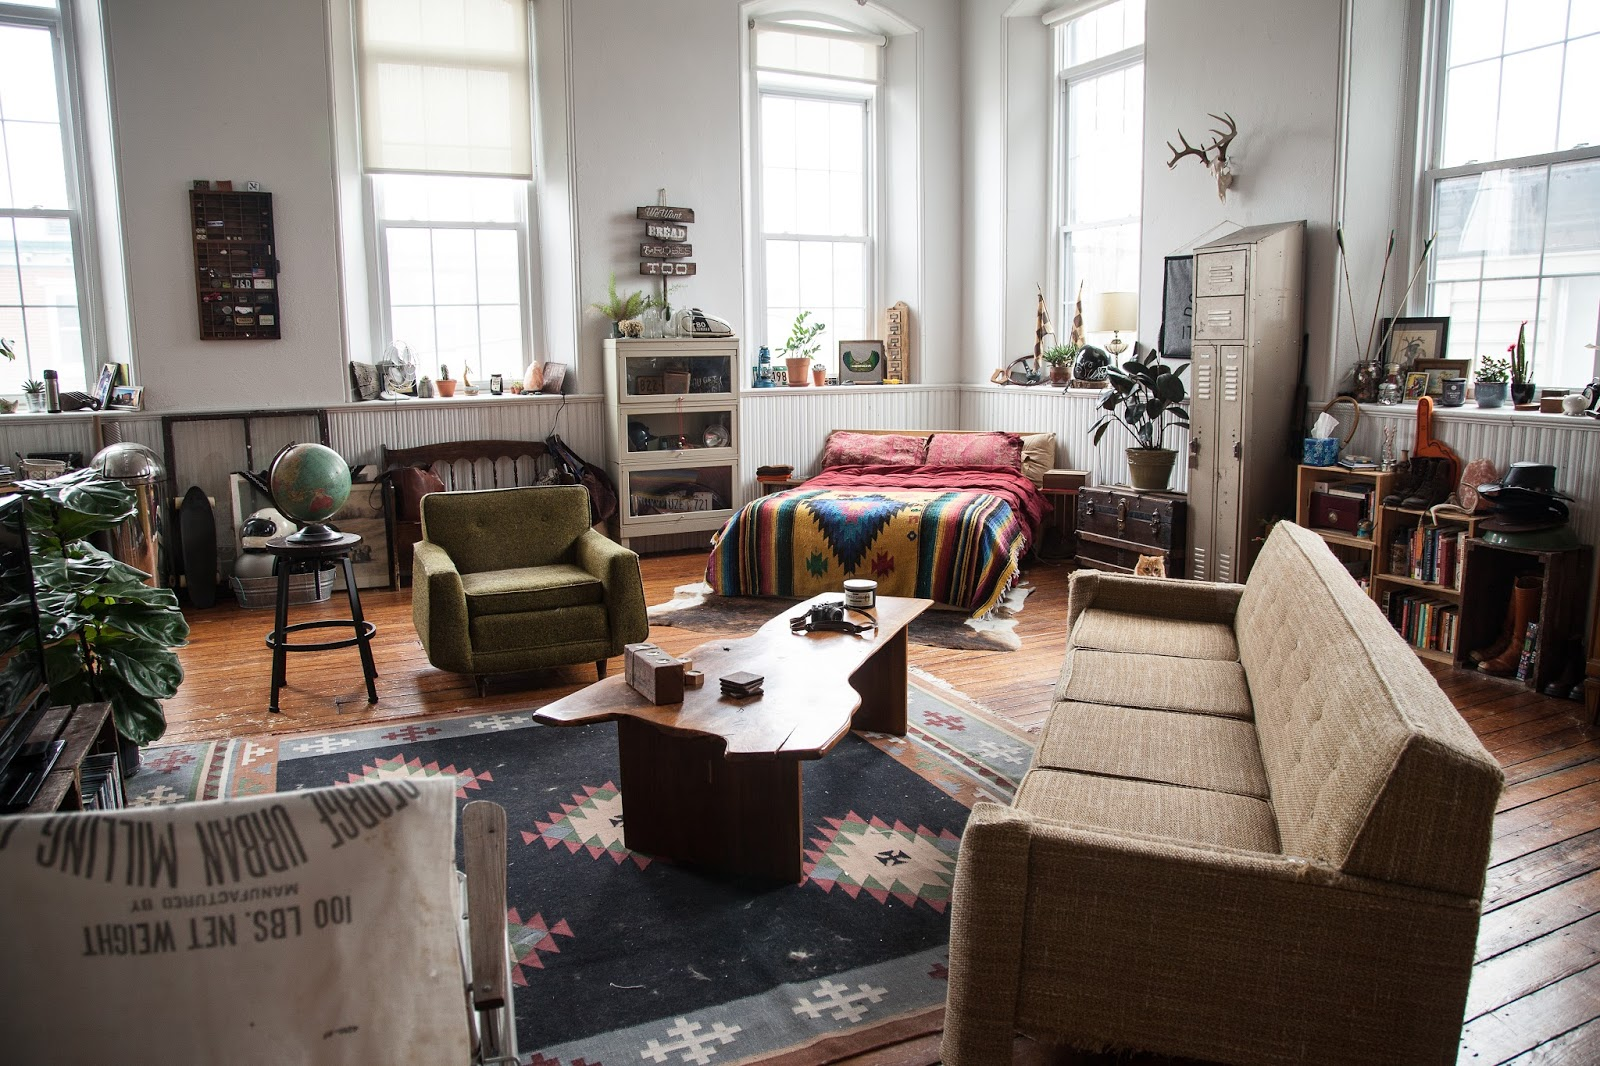 Fishtown Studio Living Room in a Former Church Rectory